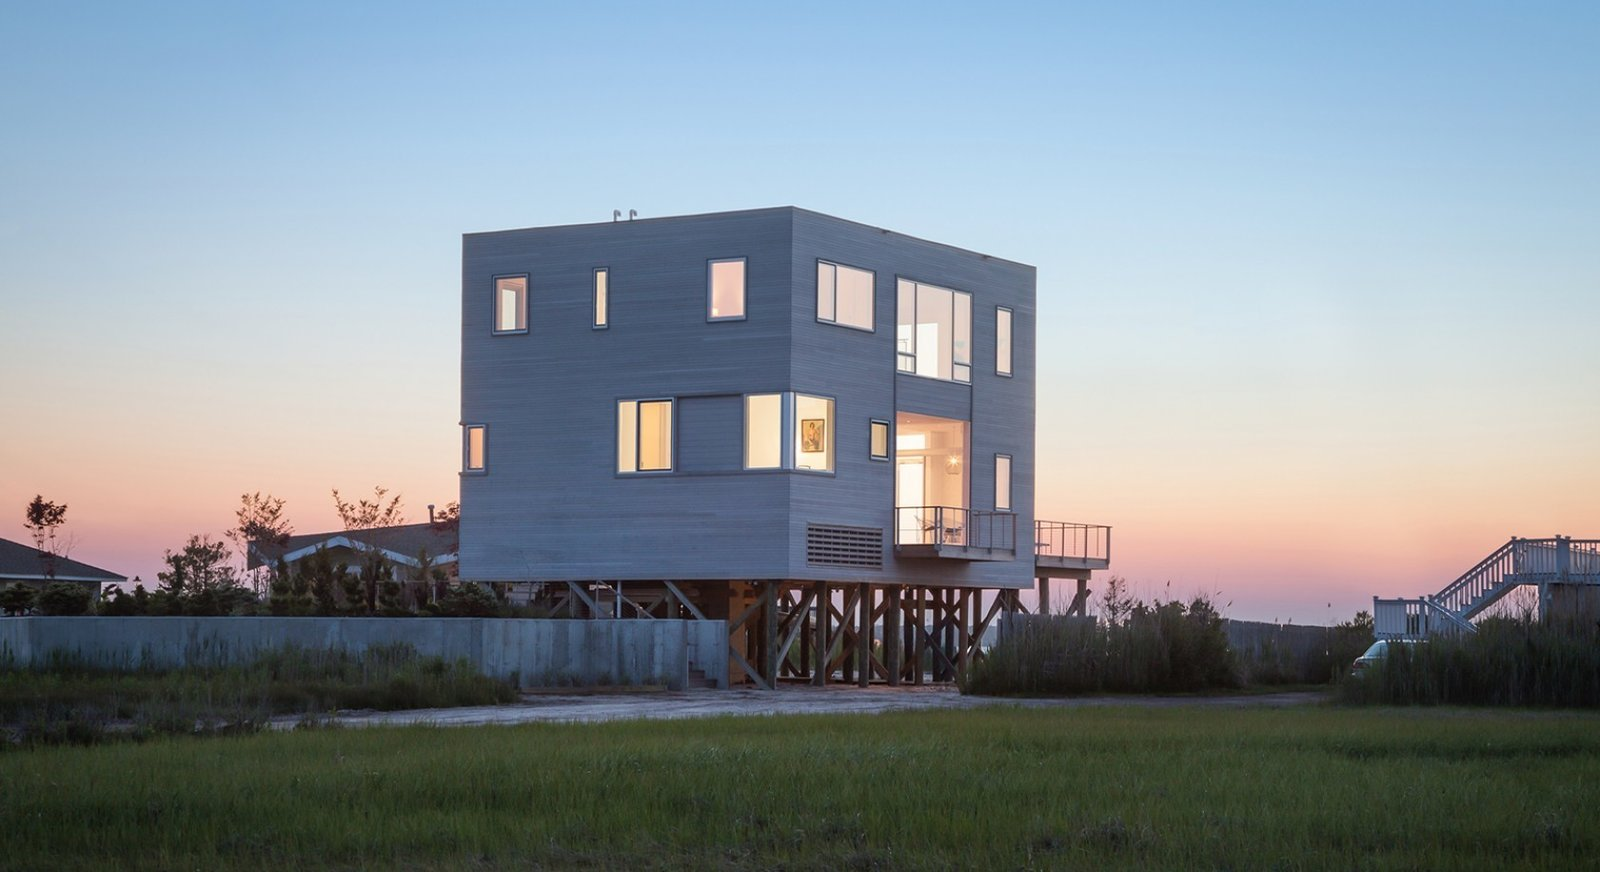 #CubeHouse #cube #exterior #outside #landscape #dynamic #view #deck #staircase #lighting #windows #elevated #levels #Westhamptonbeach #NewYork #LeroyStreetStudio   Cube House by Leroy Street Studio